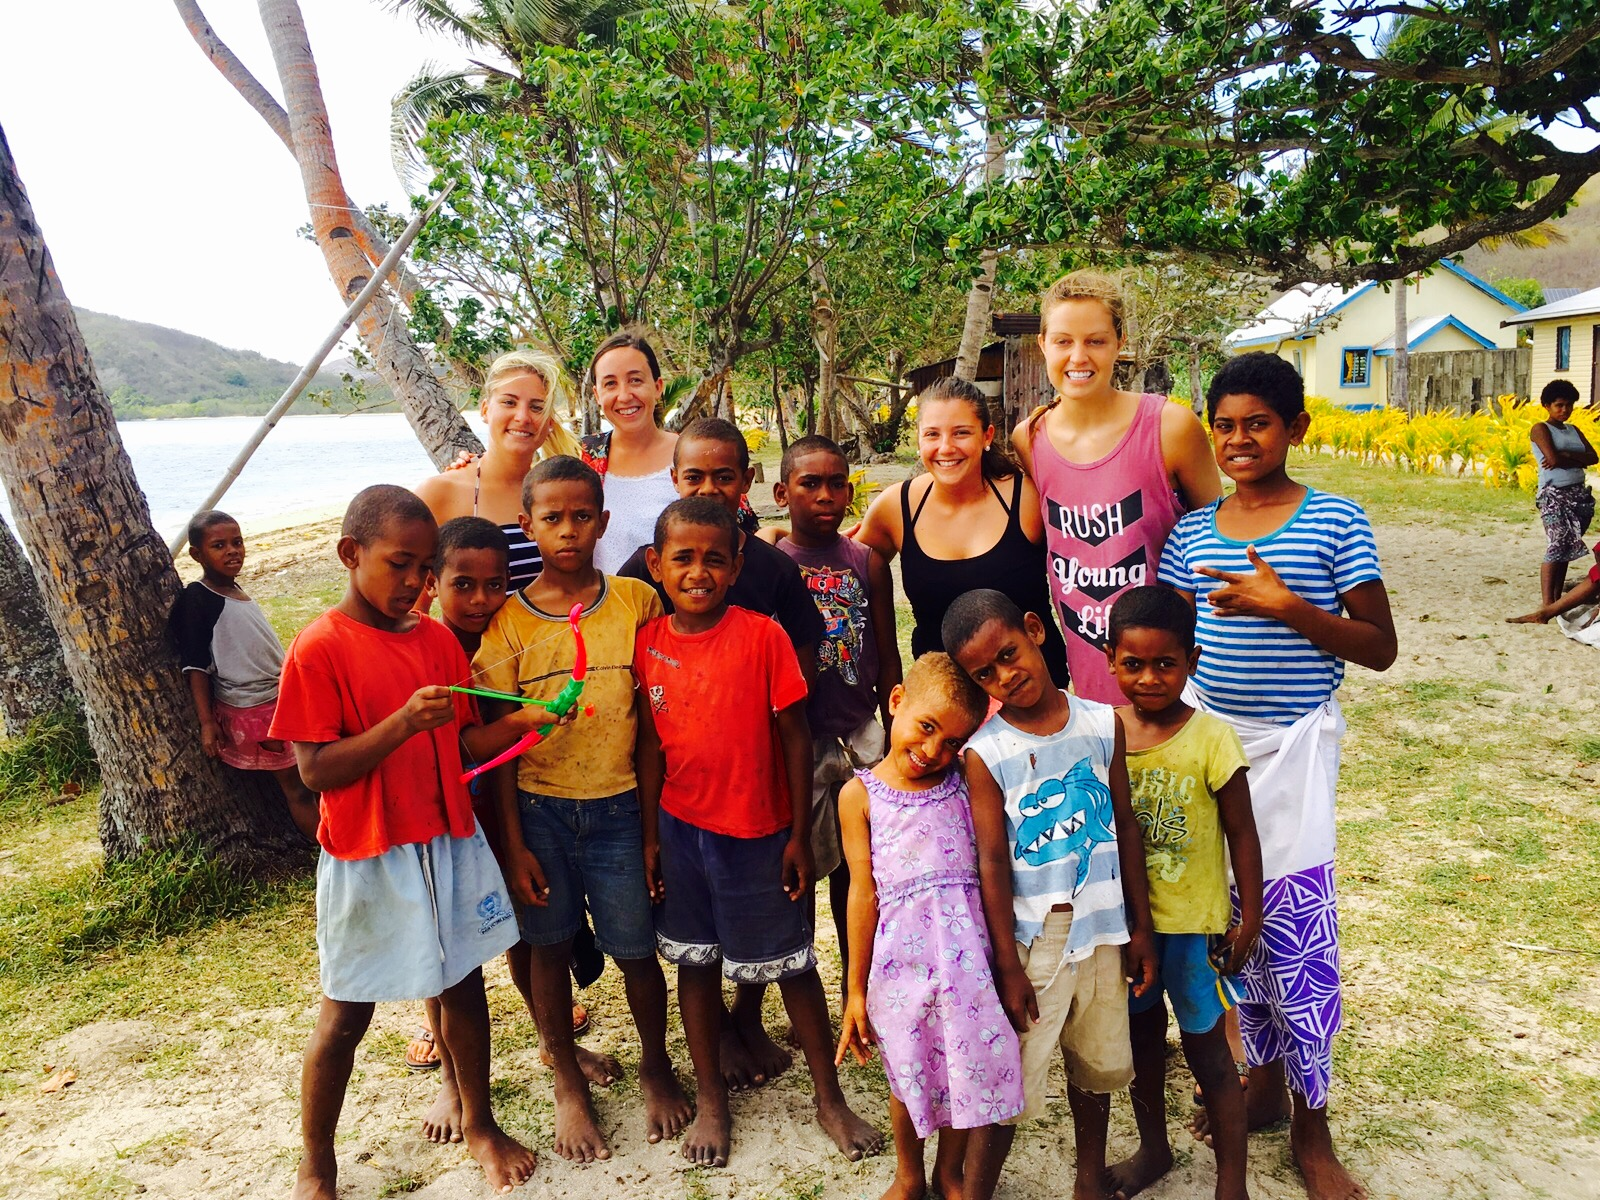 Playing with the children in the village was one of the most joyful and humbling experiences.